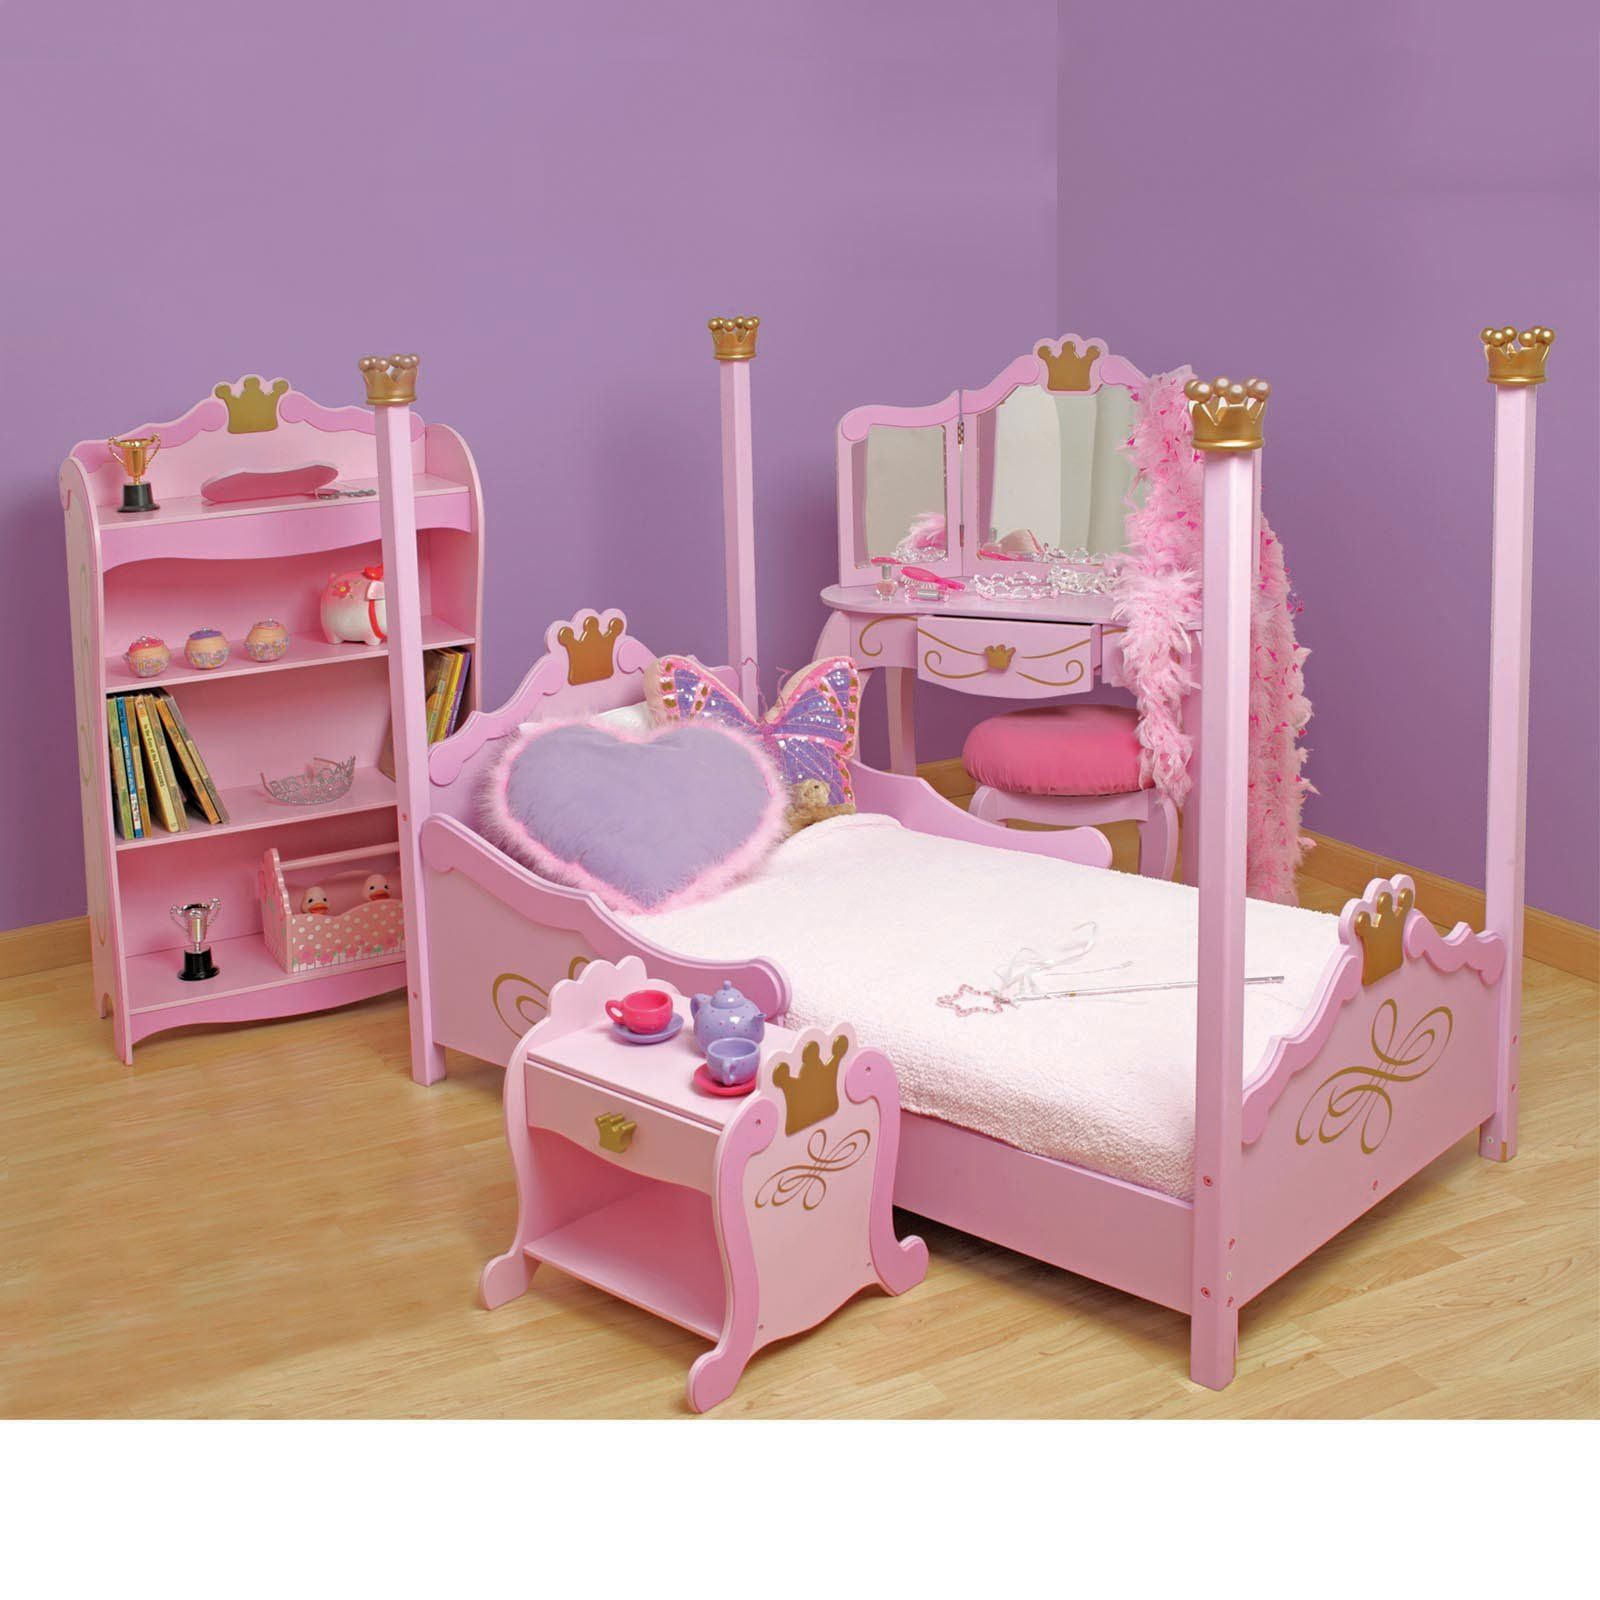 Cute toddler beds for girls for Furniture for toddlers room